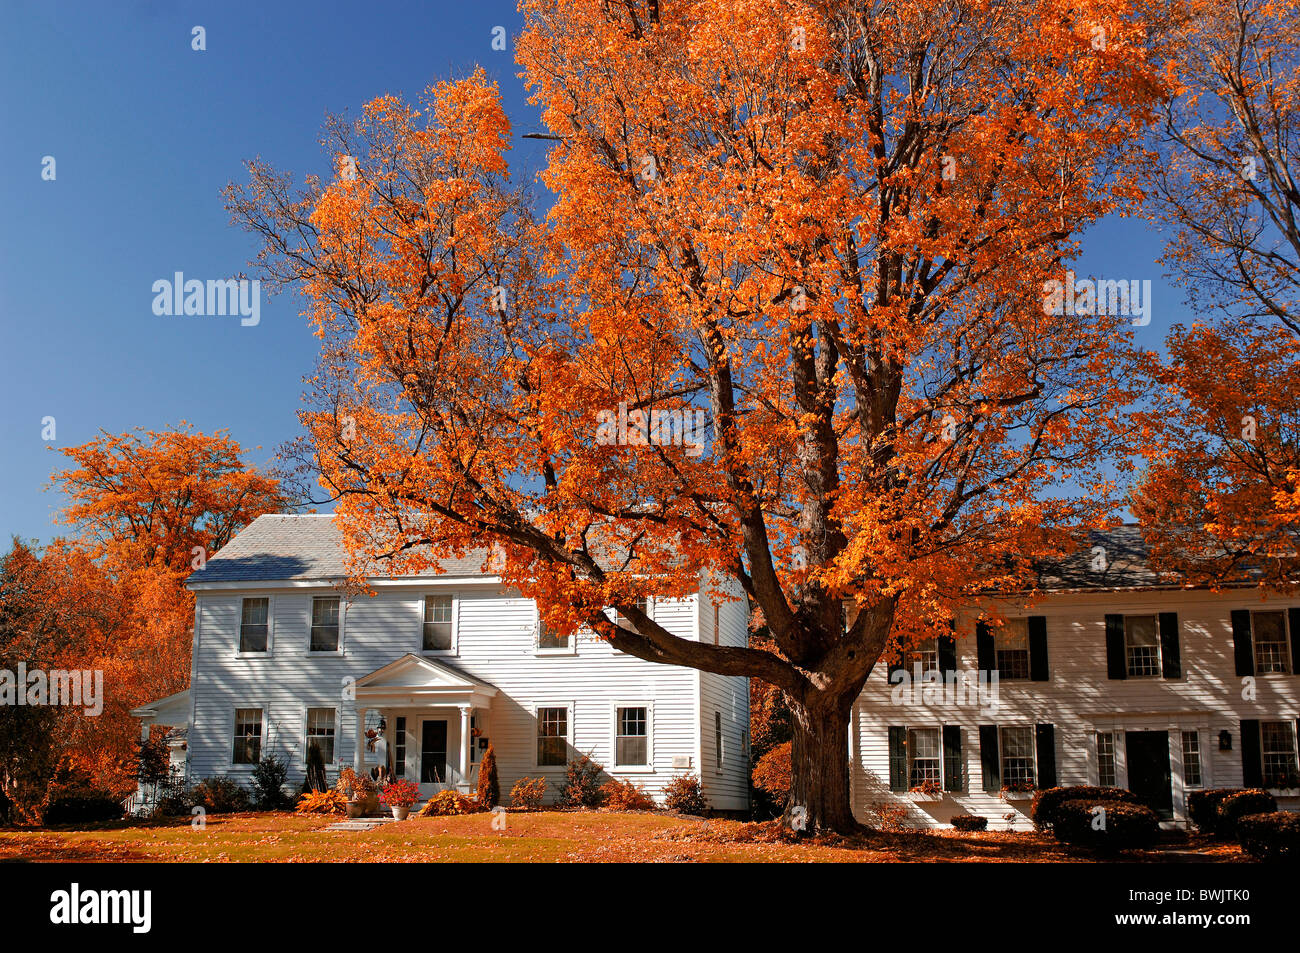 houses homes residential building s white autumn Old Bennington Indian summer Vermont USA America United Sta - Stock Image